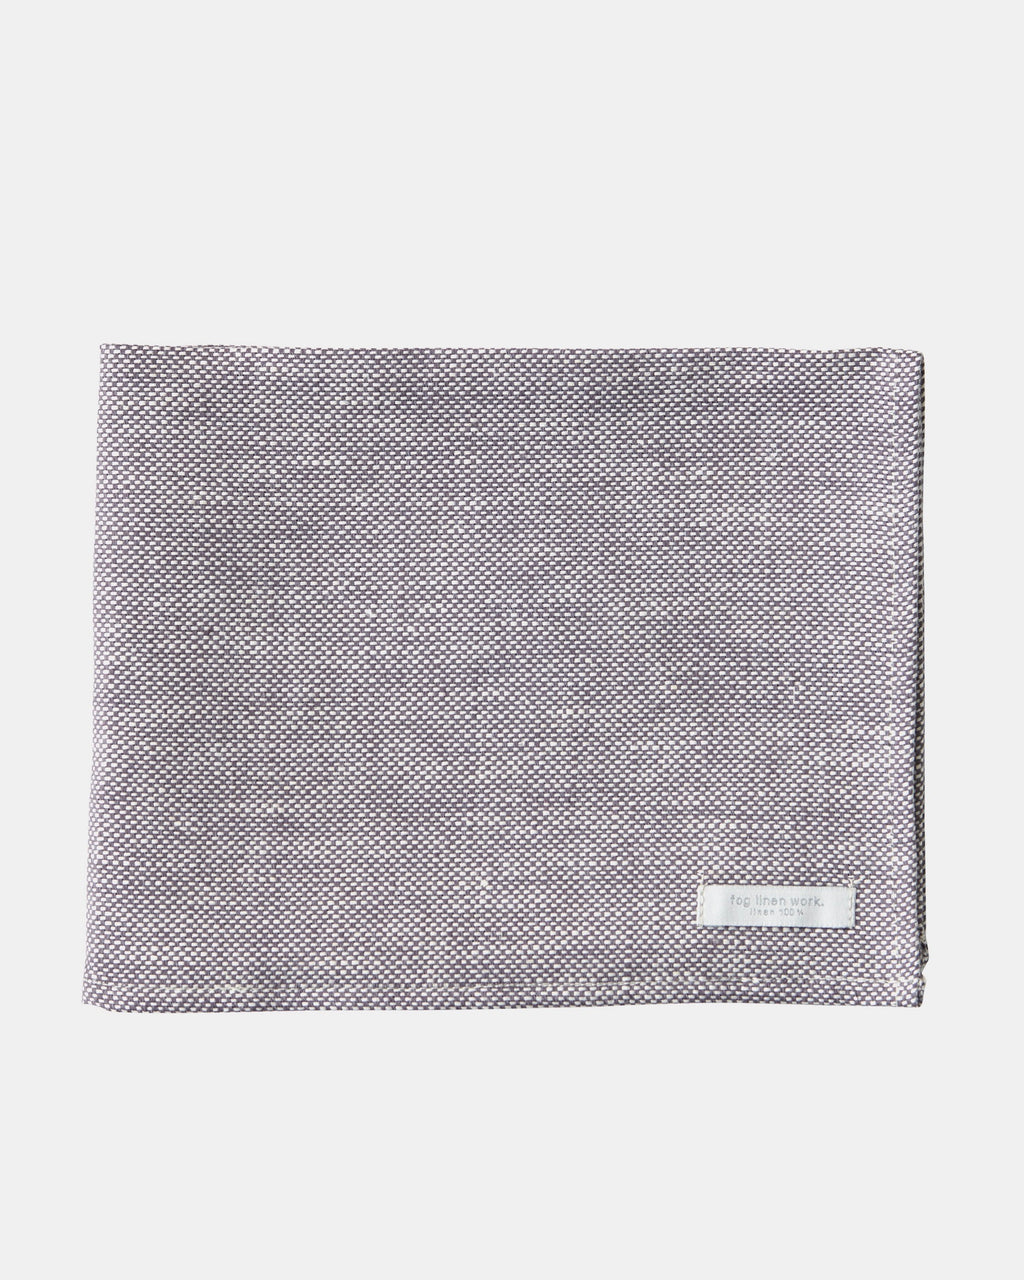 Linen Chambray Towel: Medium